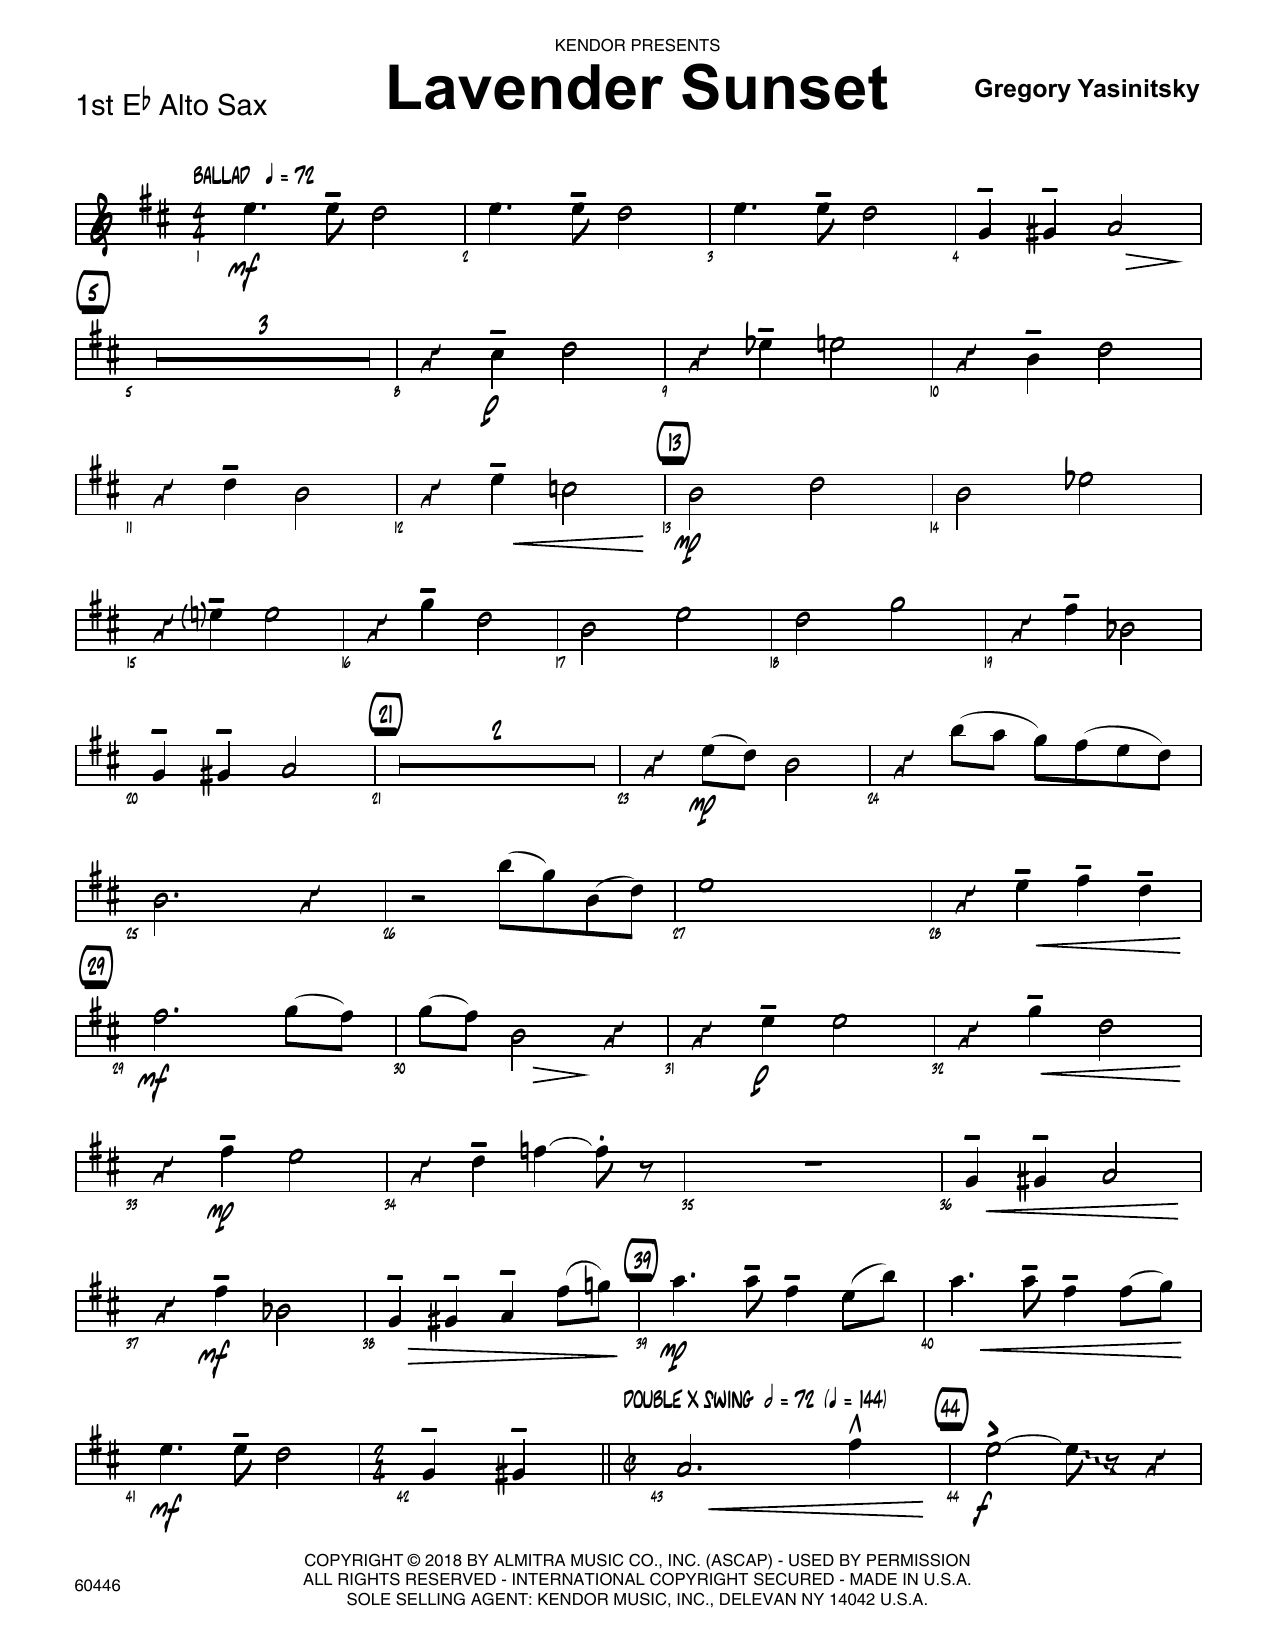 Gregory Yasinitsky Lavender Sunset - 1st Eb Alto Saxophone sheet music preview music notes and score for Jazz Ensemble including 2 page(s)